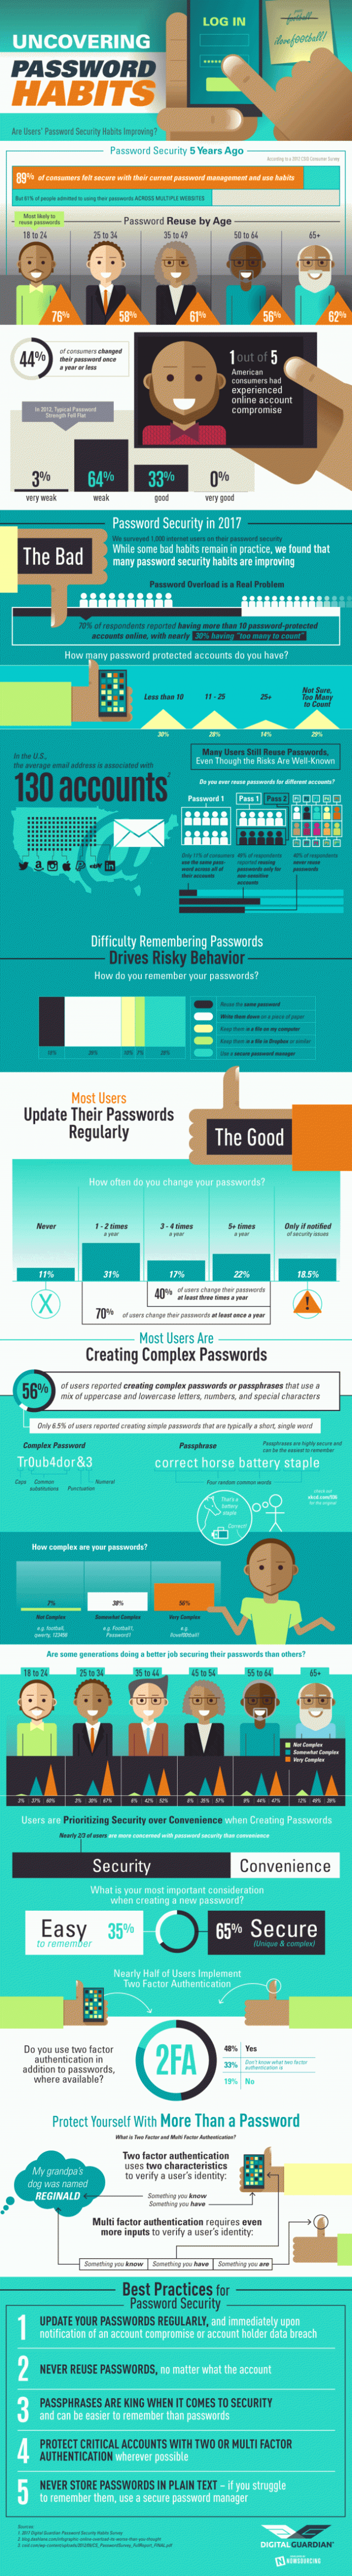 Uncovering password habits